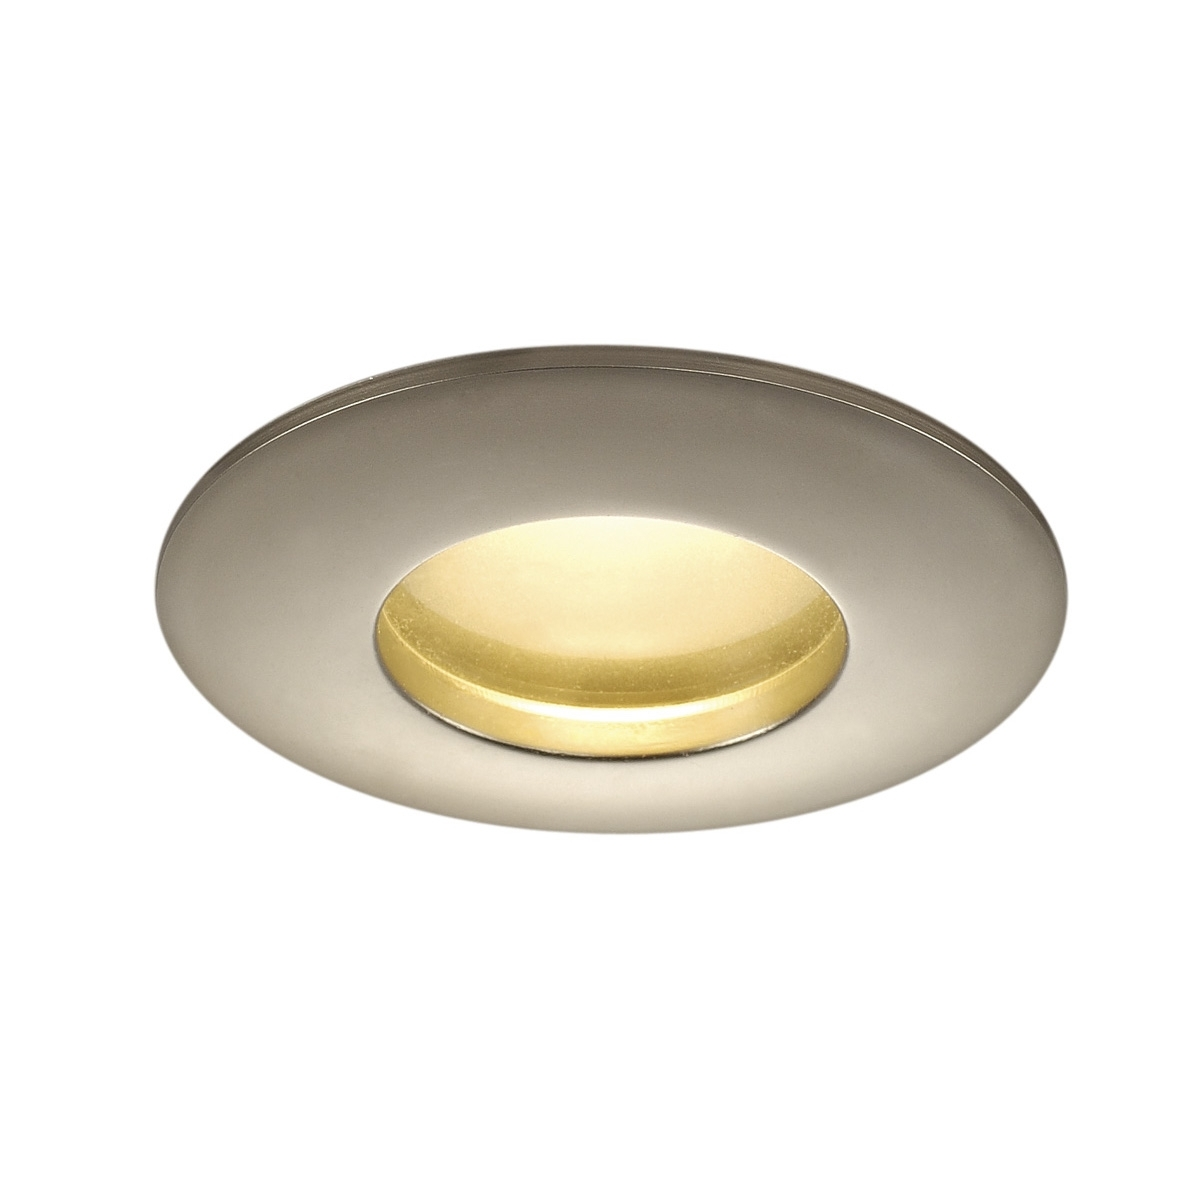 Most Recent Outdoor Led Recessed Ceiling Lights Intended For Out 65, Outdoor Recessed Ceiling Light, Led, 3000k, Round, Titanium (View 15 of 20)